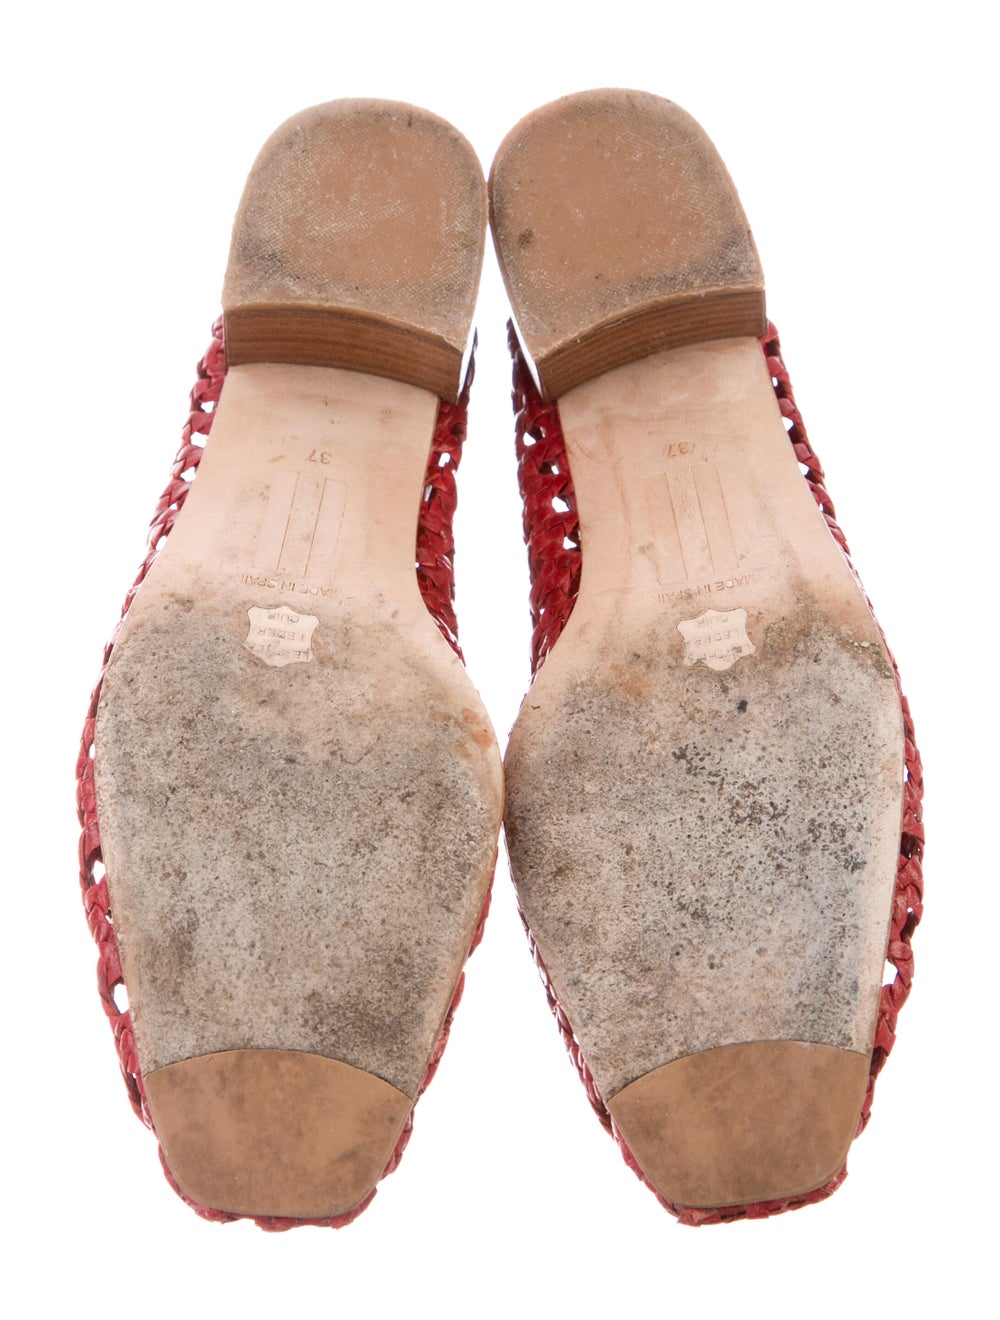 Miista Leather Flats Red - image 5